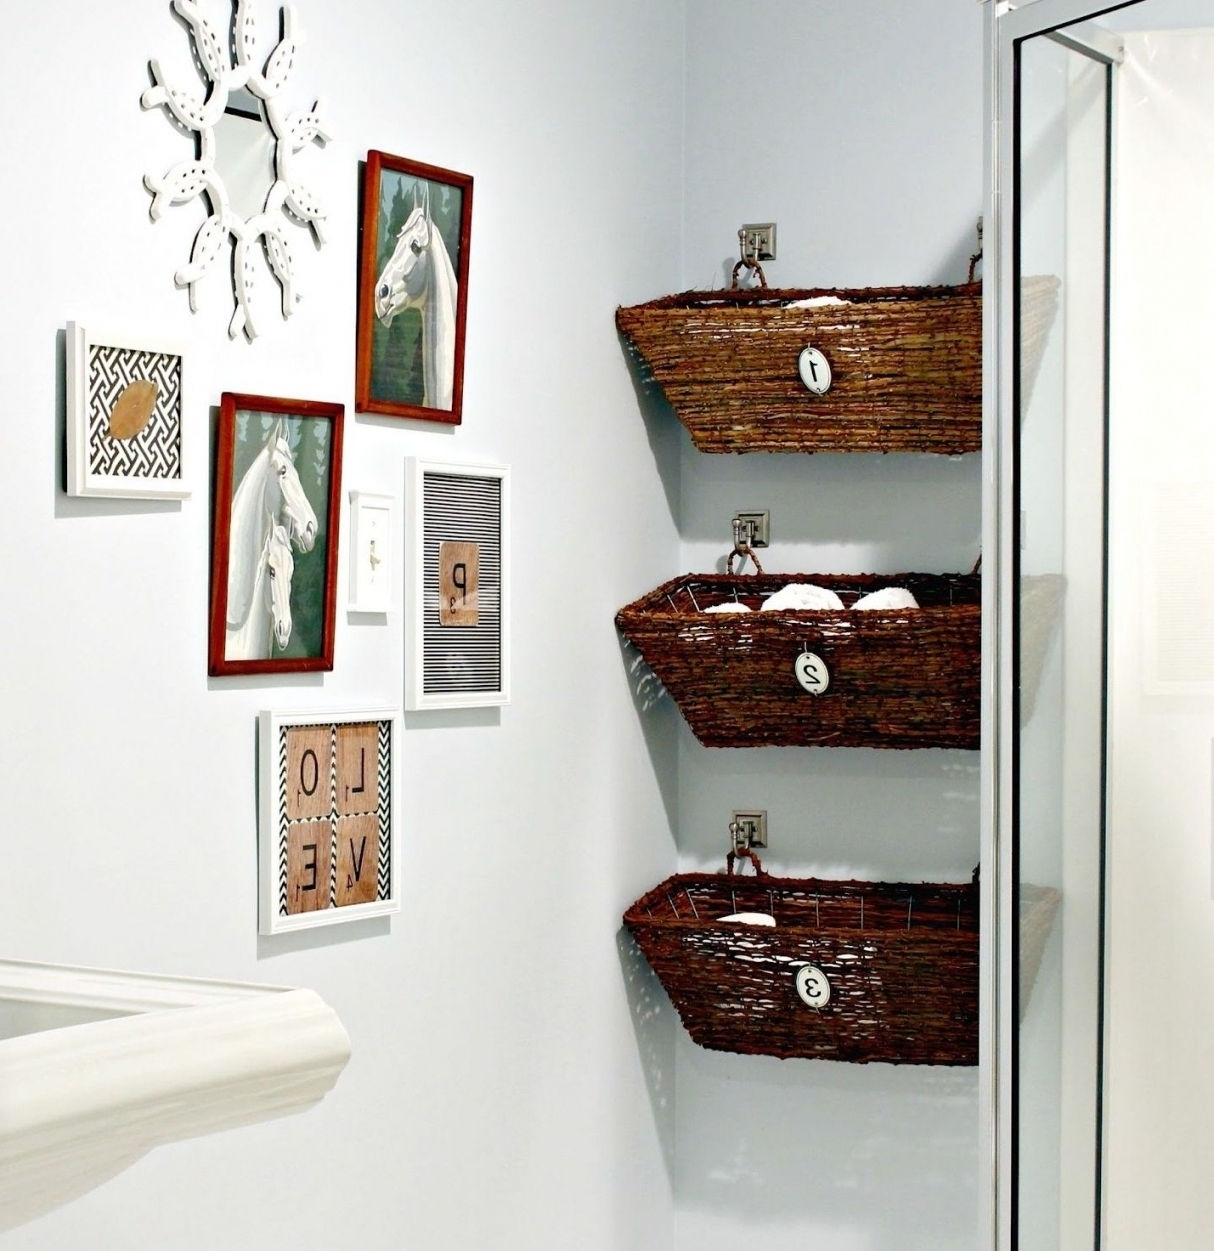 Most Popular Wall Art For The Bathroom With Regard To Picture Frame Wall Art Ideas (View 15 of 15)